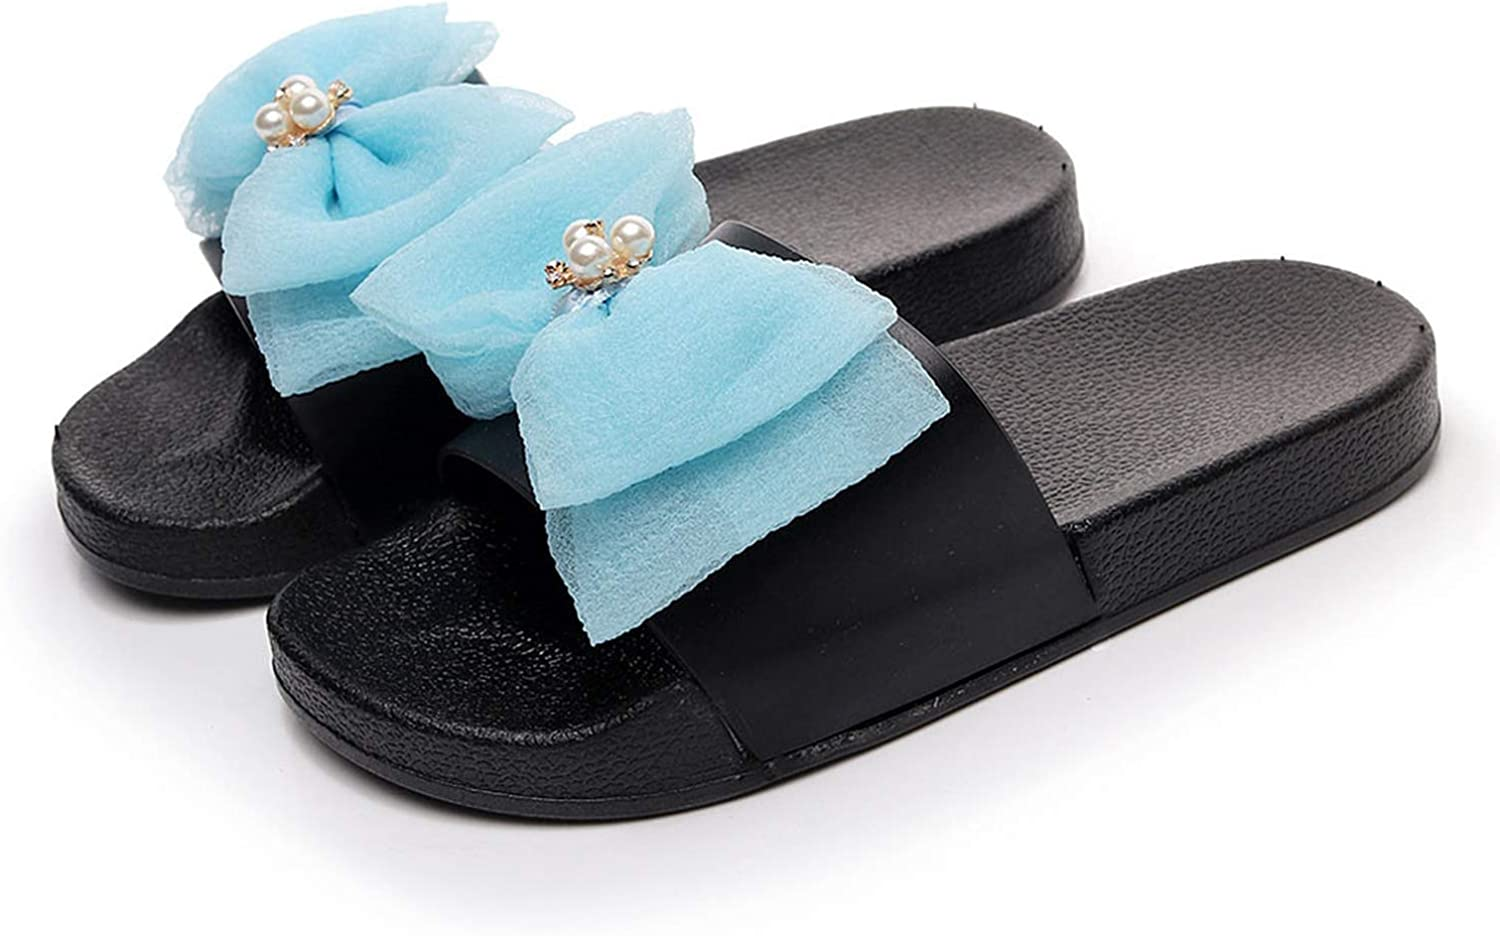 2019 New Summer Women Slippers Ladies Girls Bowknot Crystal Flat Slippers Beach Shoes Shoes Woman with Heels # g35,E,5.5,United States